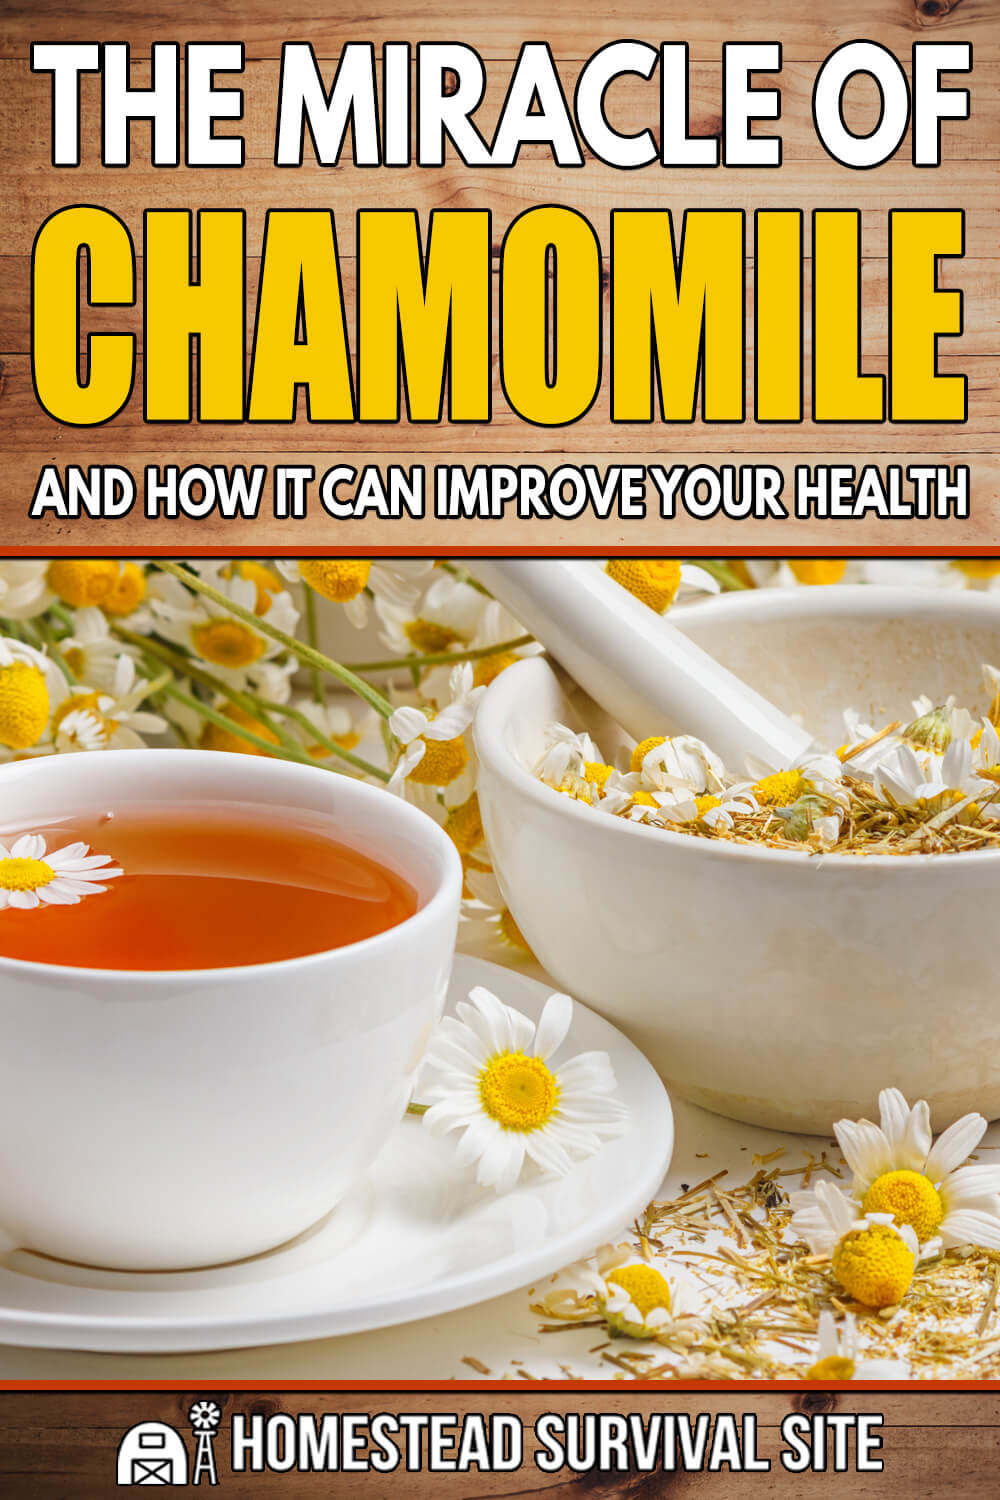 The Miracle of Chamomile and How it Can Improve Your Health